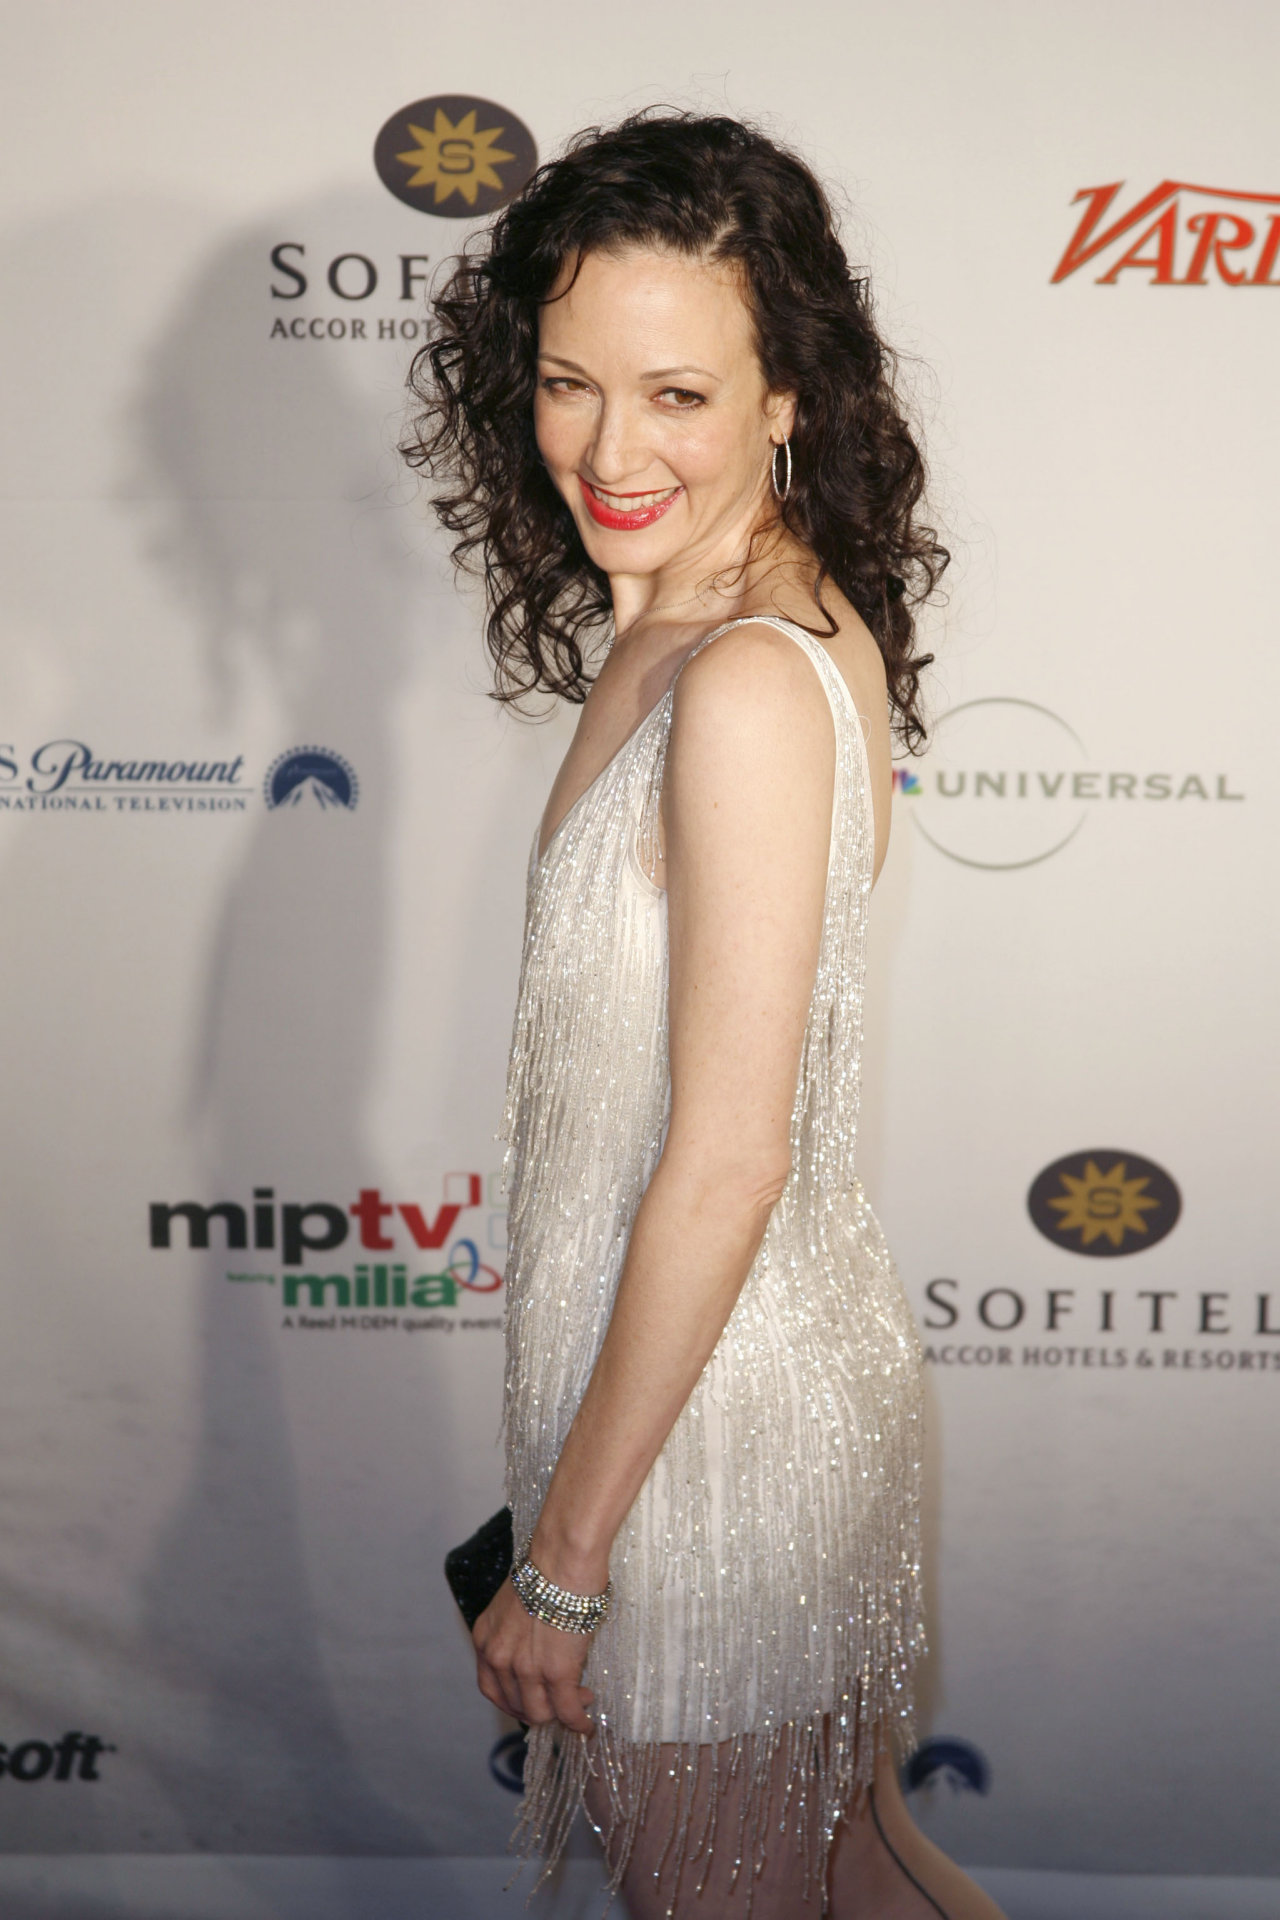 bebe neuwirth dating Bebe neuwirth theatre credits, stage history and theater resume - neuwirth was born in princeton, new jersey, the daughter of sydney anne, an artist, and lee paul.